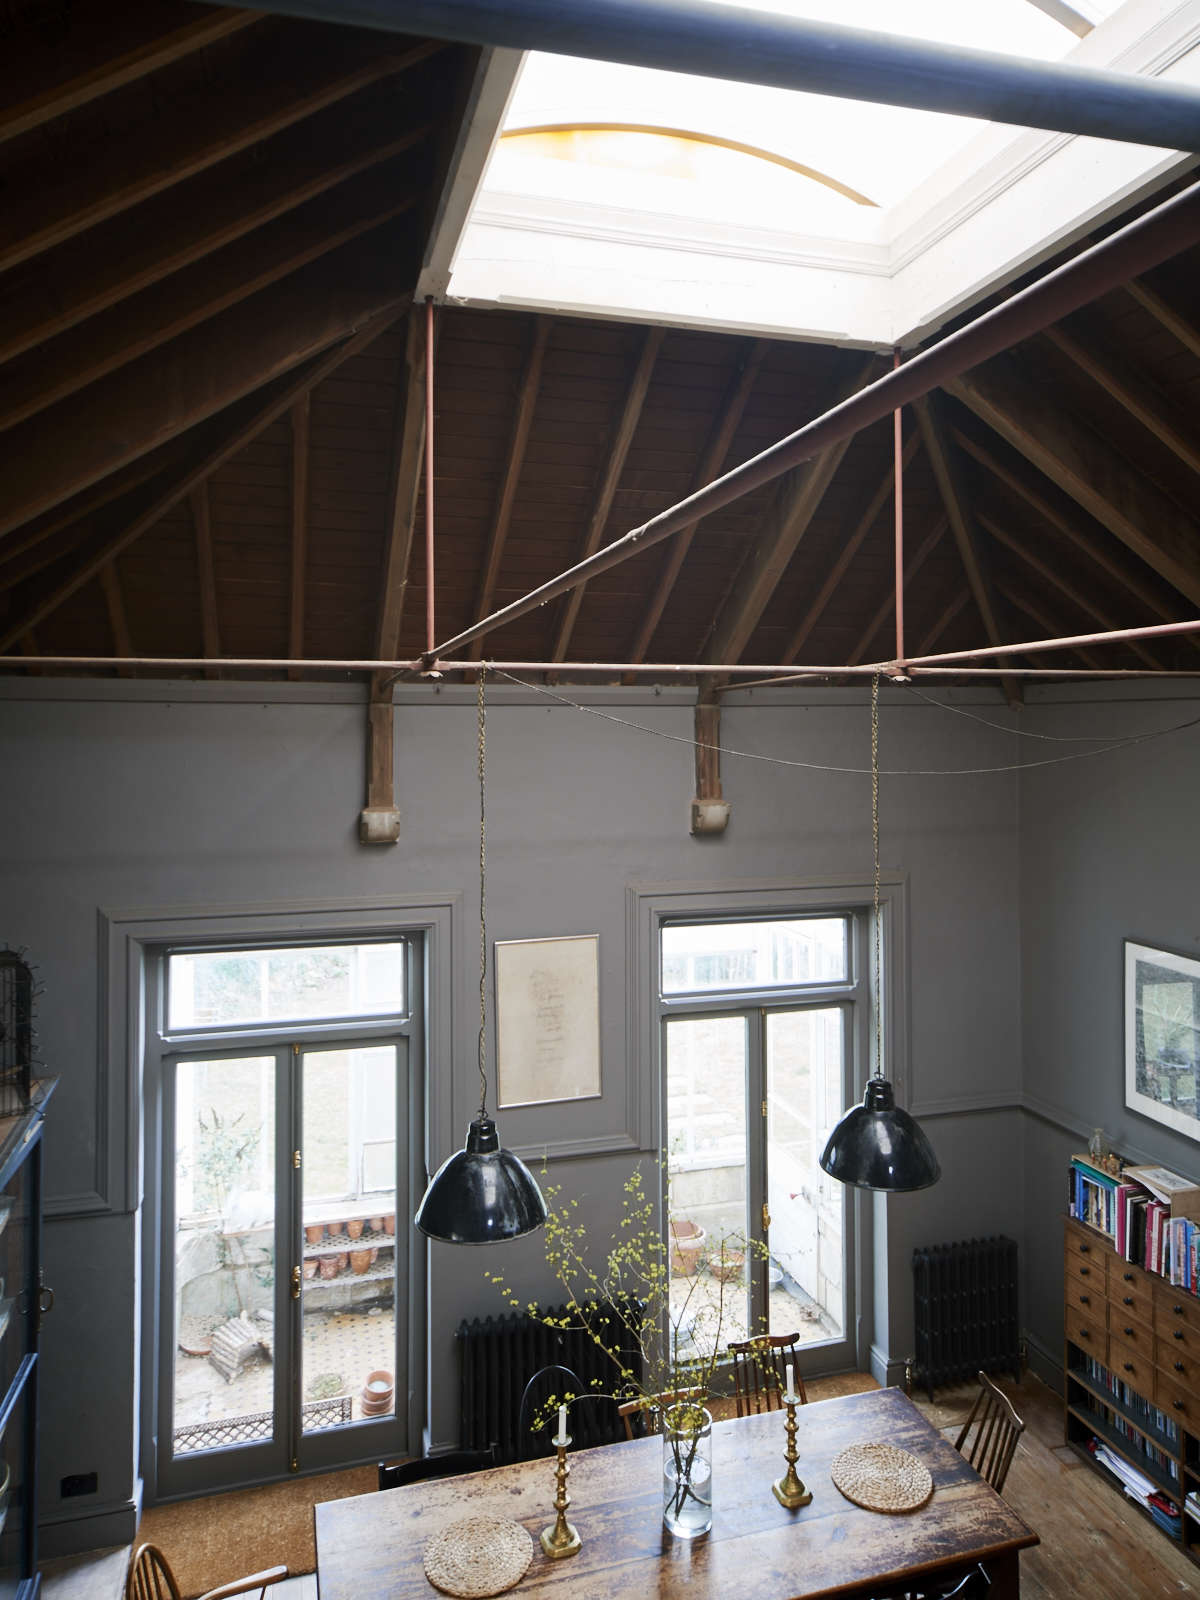 See niki turners previous residence at divine intervention the providence chapel in wiltshire